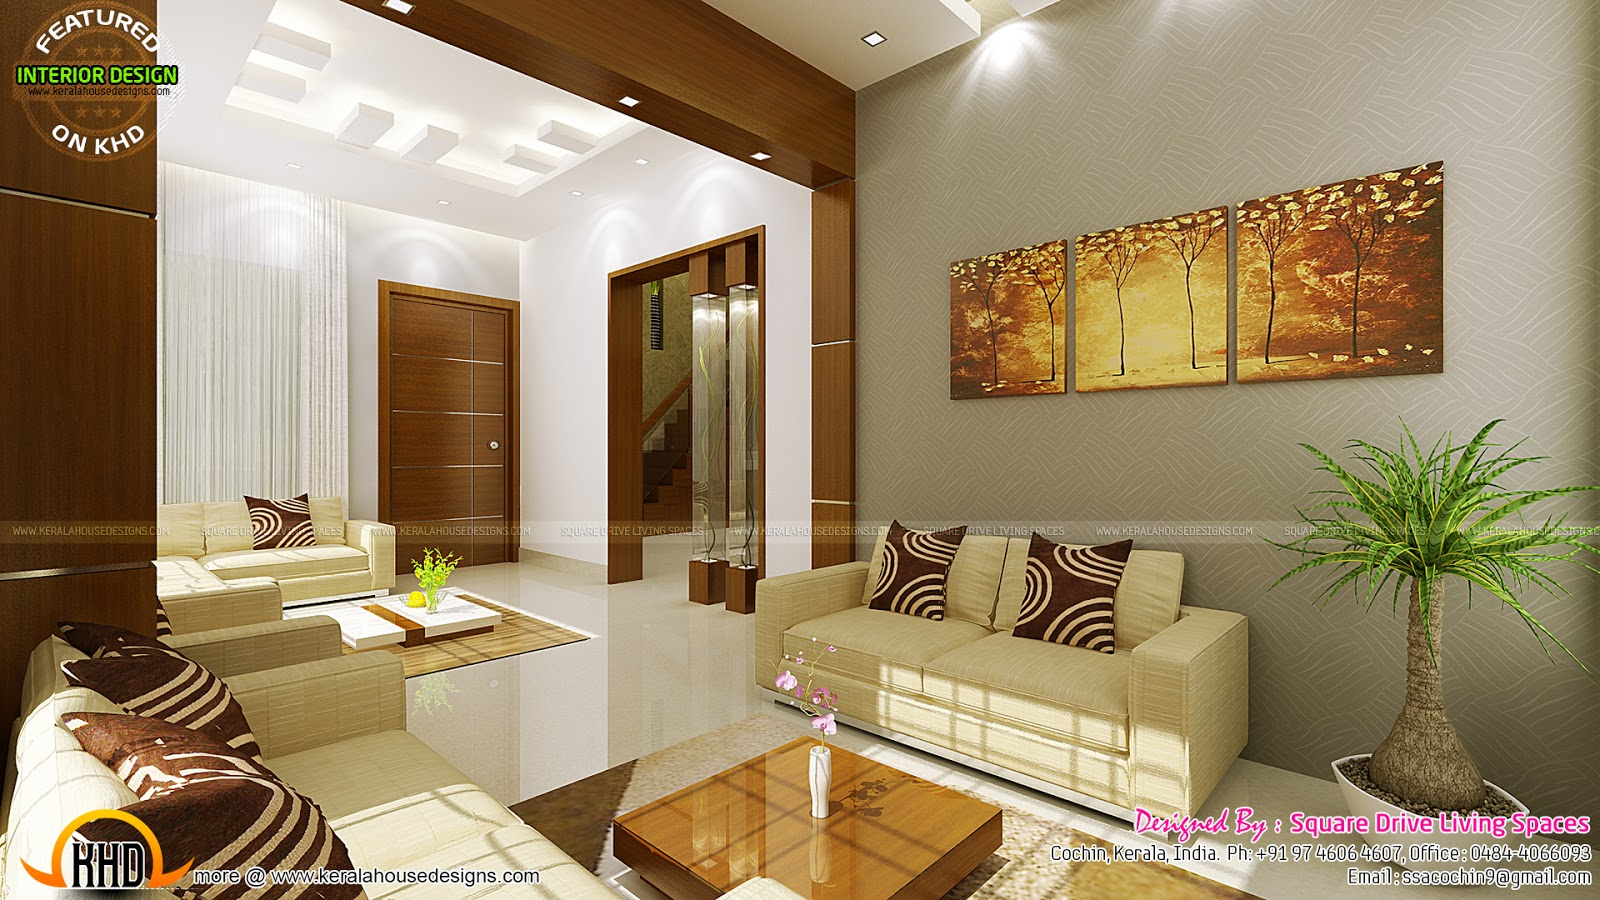 Contemporary kitchen dining and living room kerala home for Home interior design living room